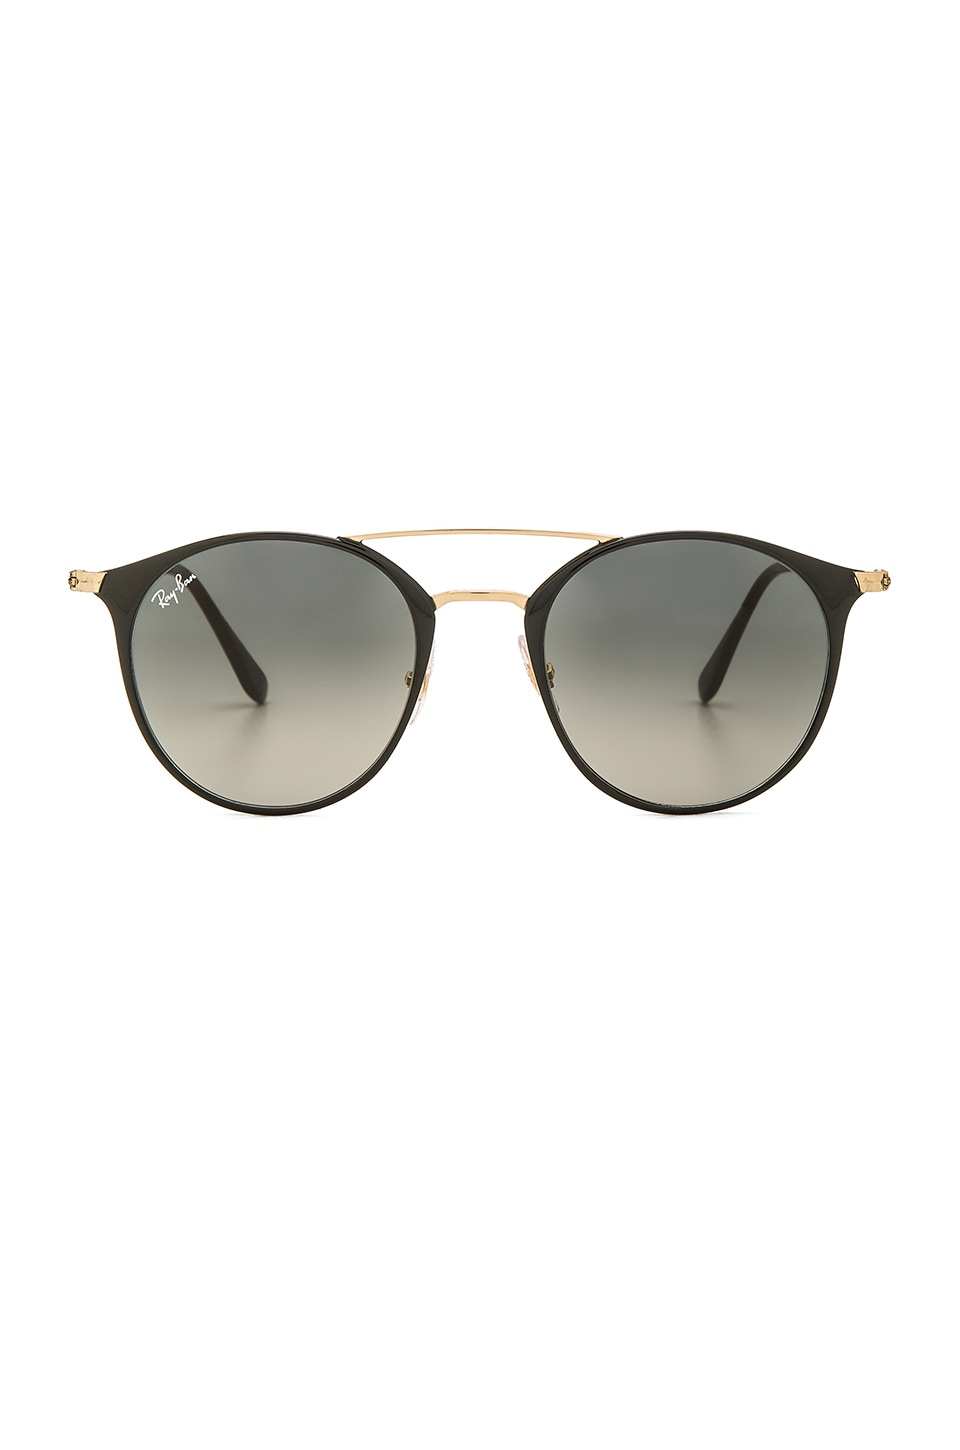 Ray-Ban RB3546 in Gold Top Black